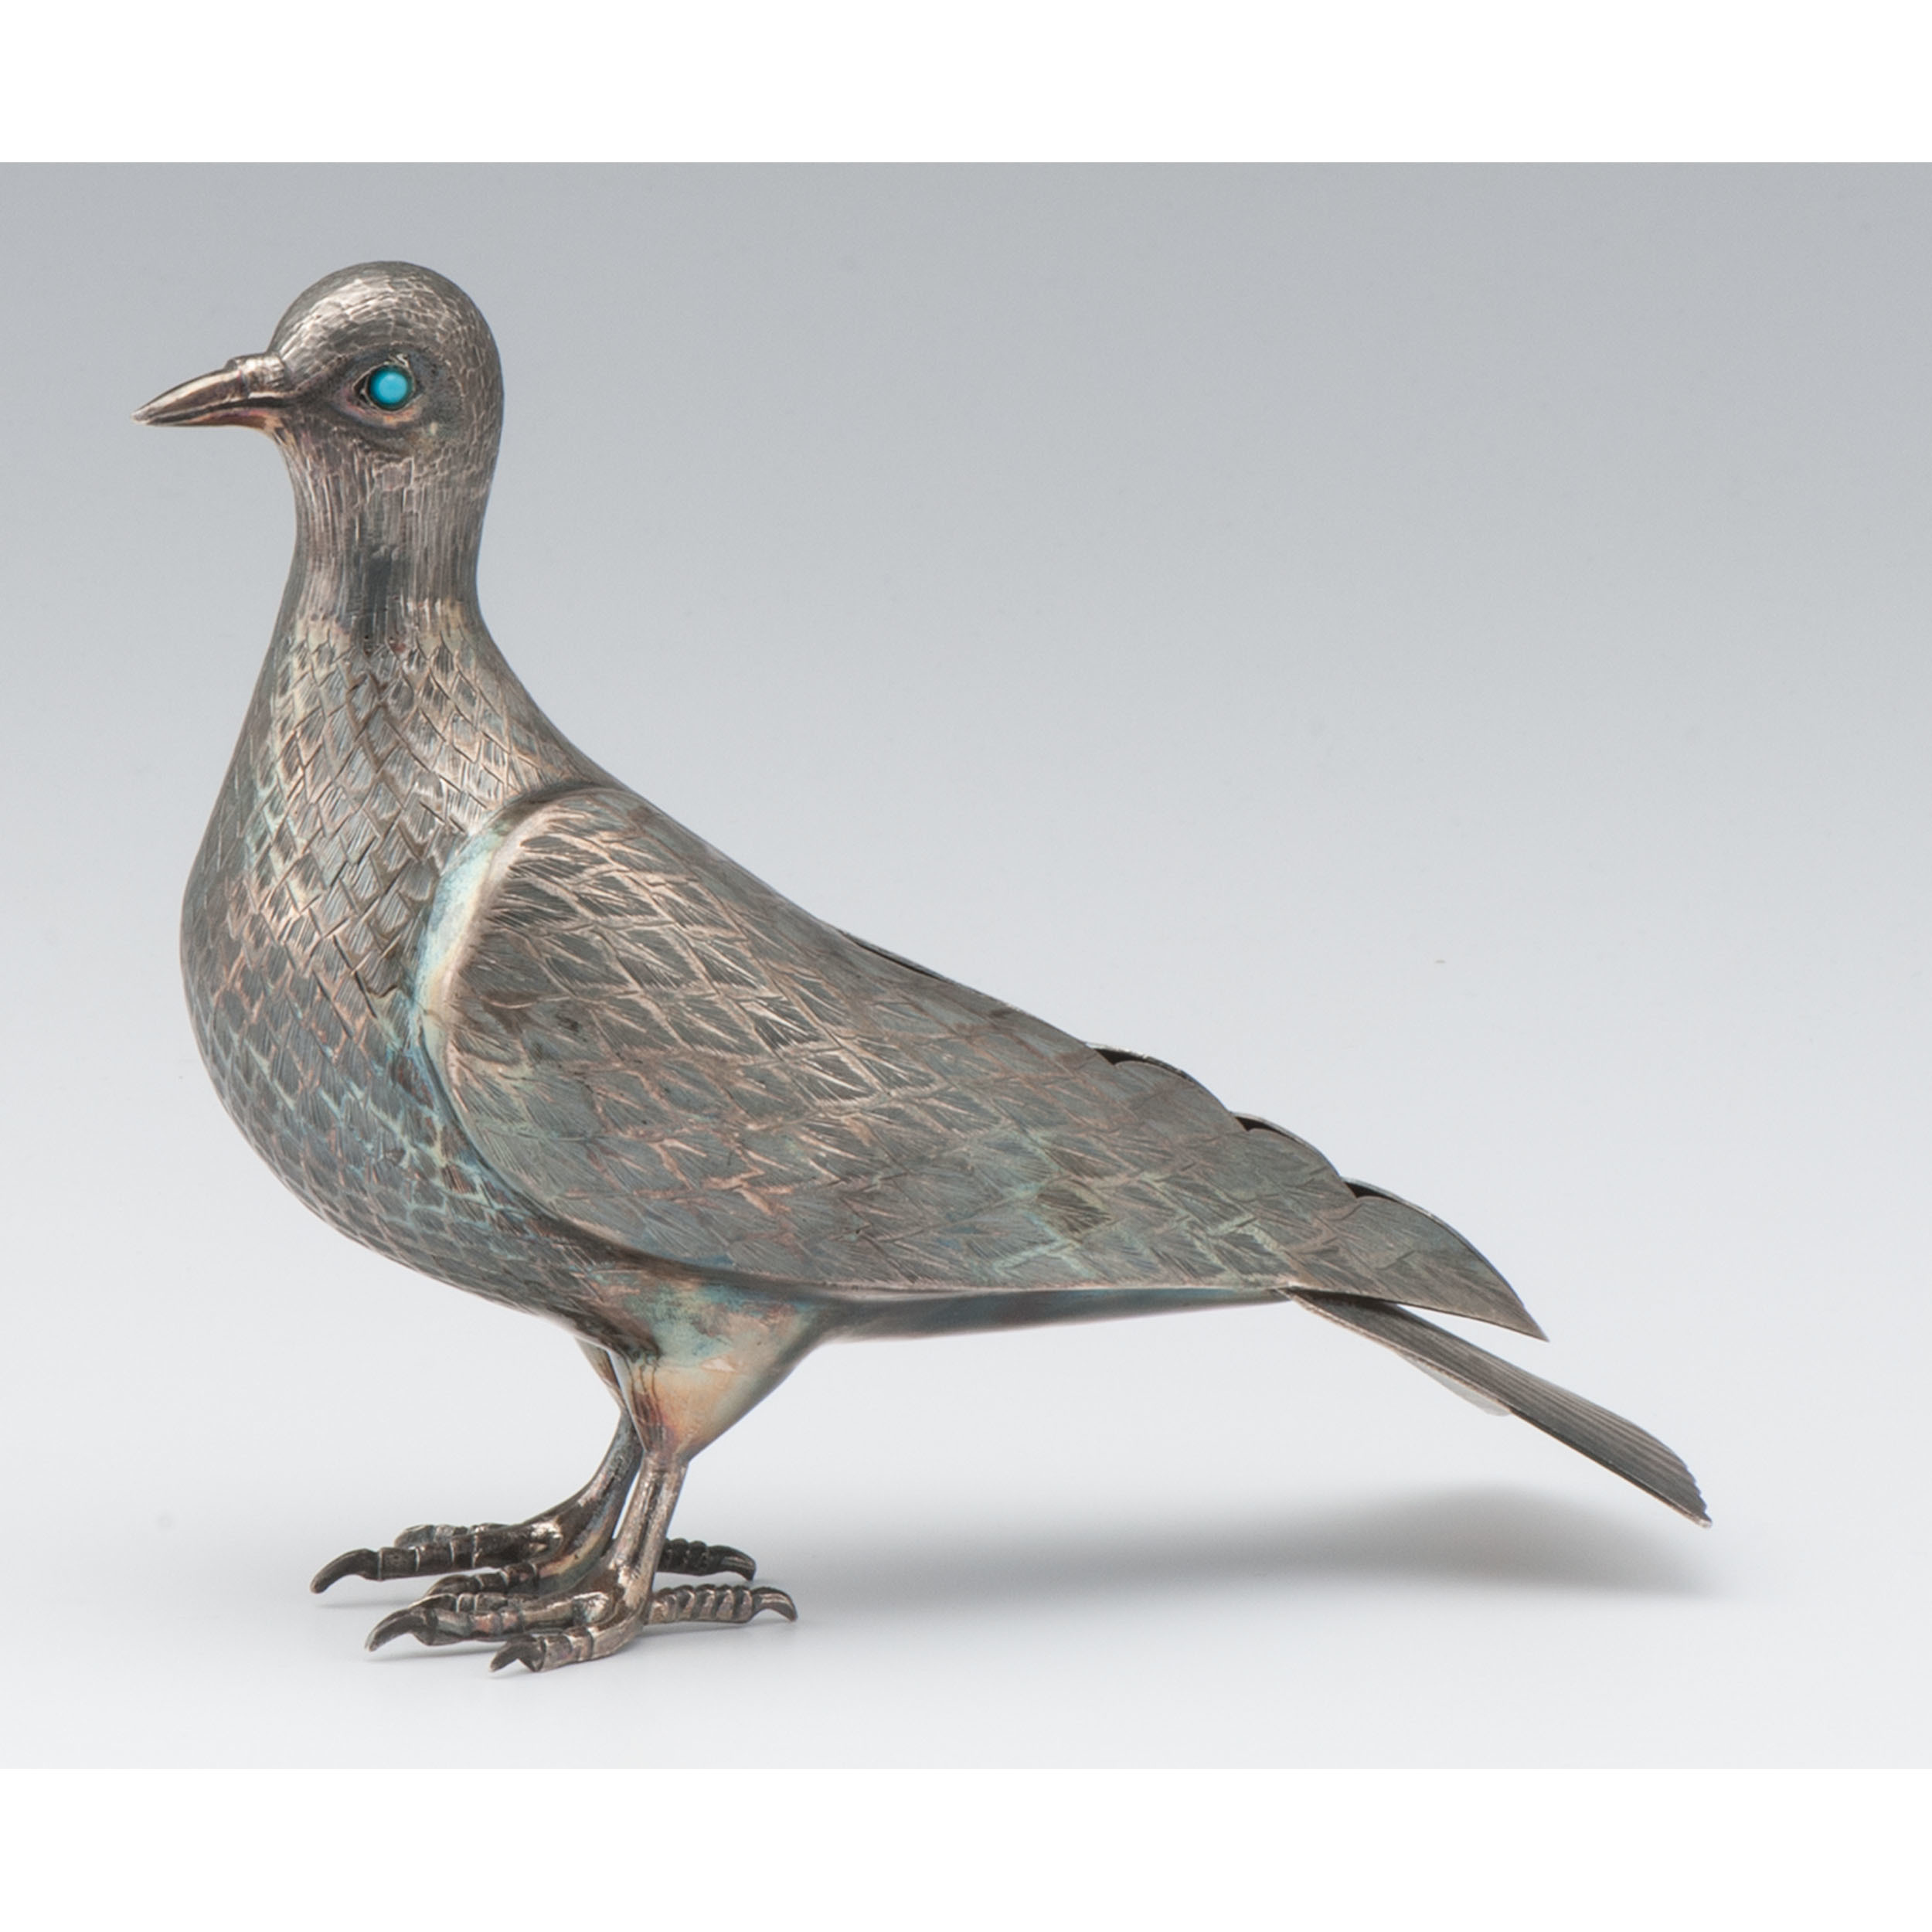 Persian Silver Dove Cowan S Auction House The Midwest S Most Trusted Auction House Antiques Fine Art Art Appraisals